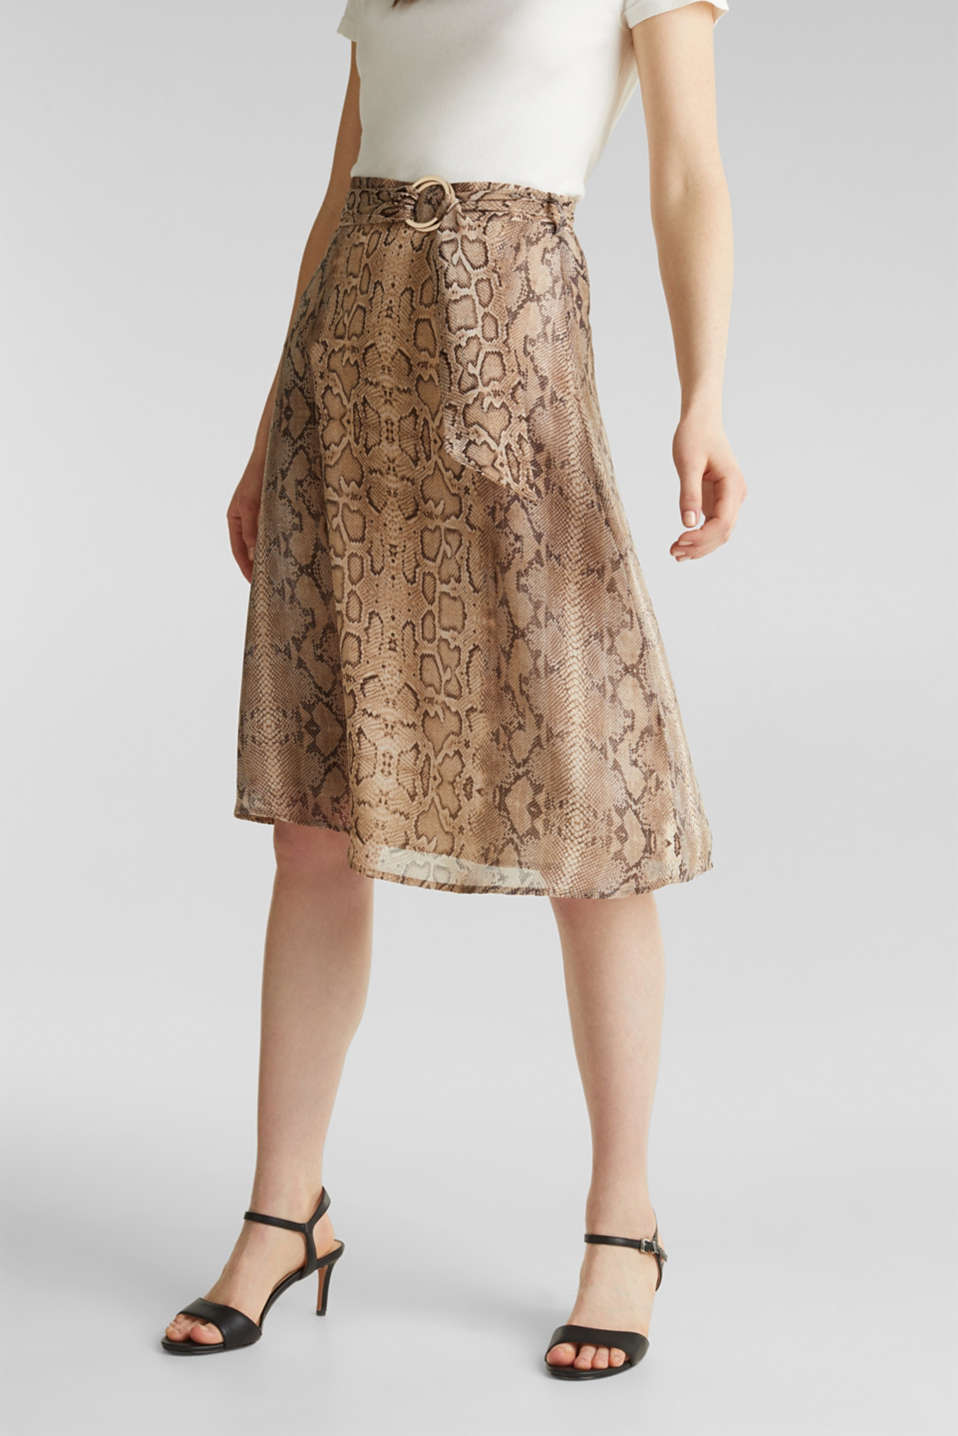 Esprit - Chiffon skirt with snake print